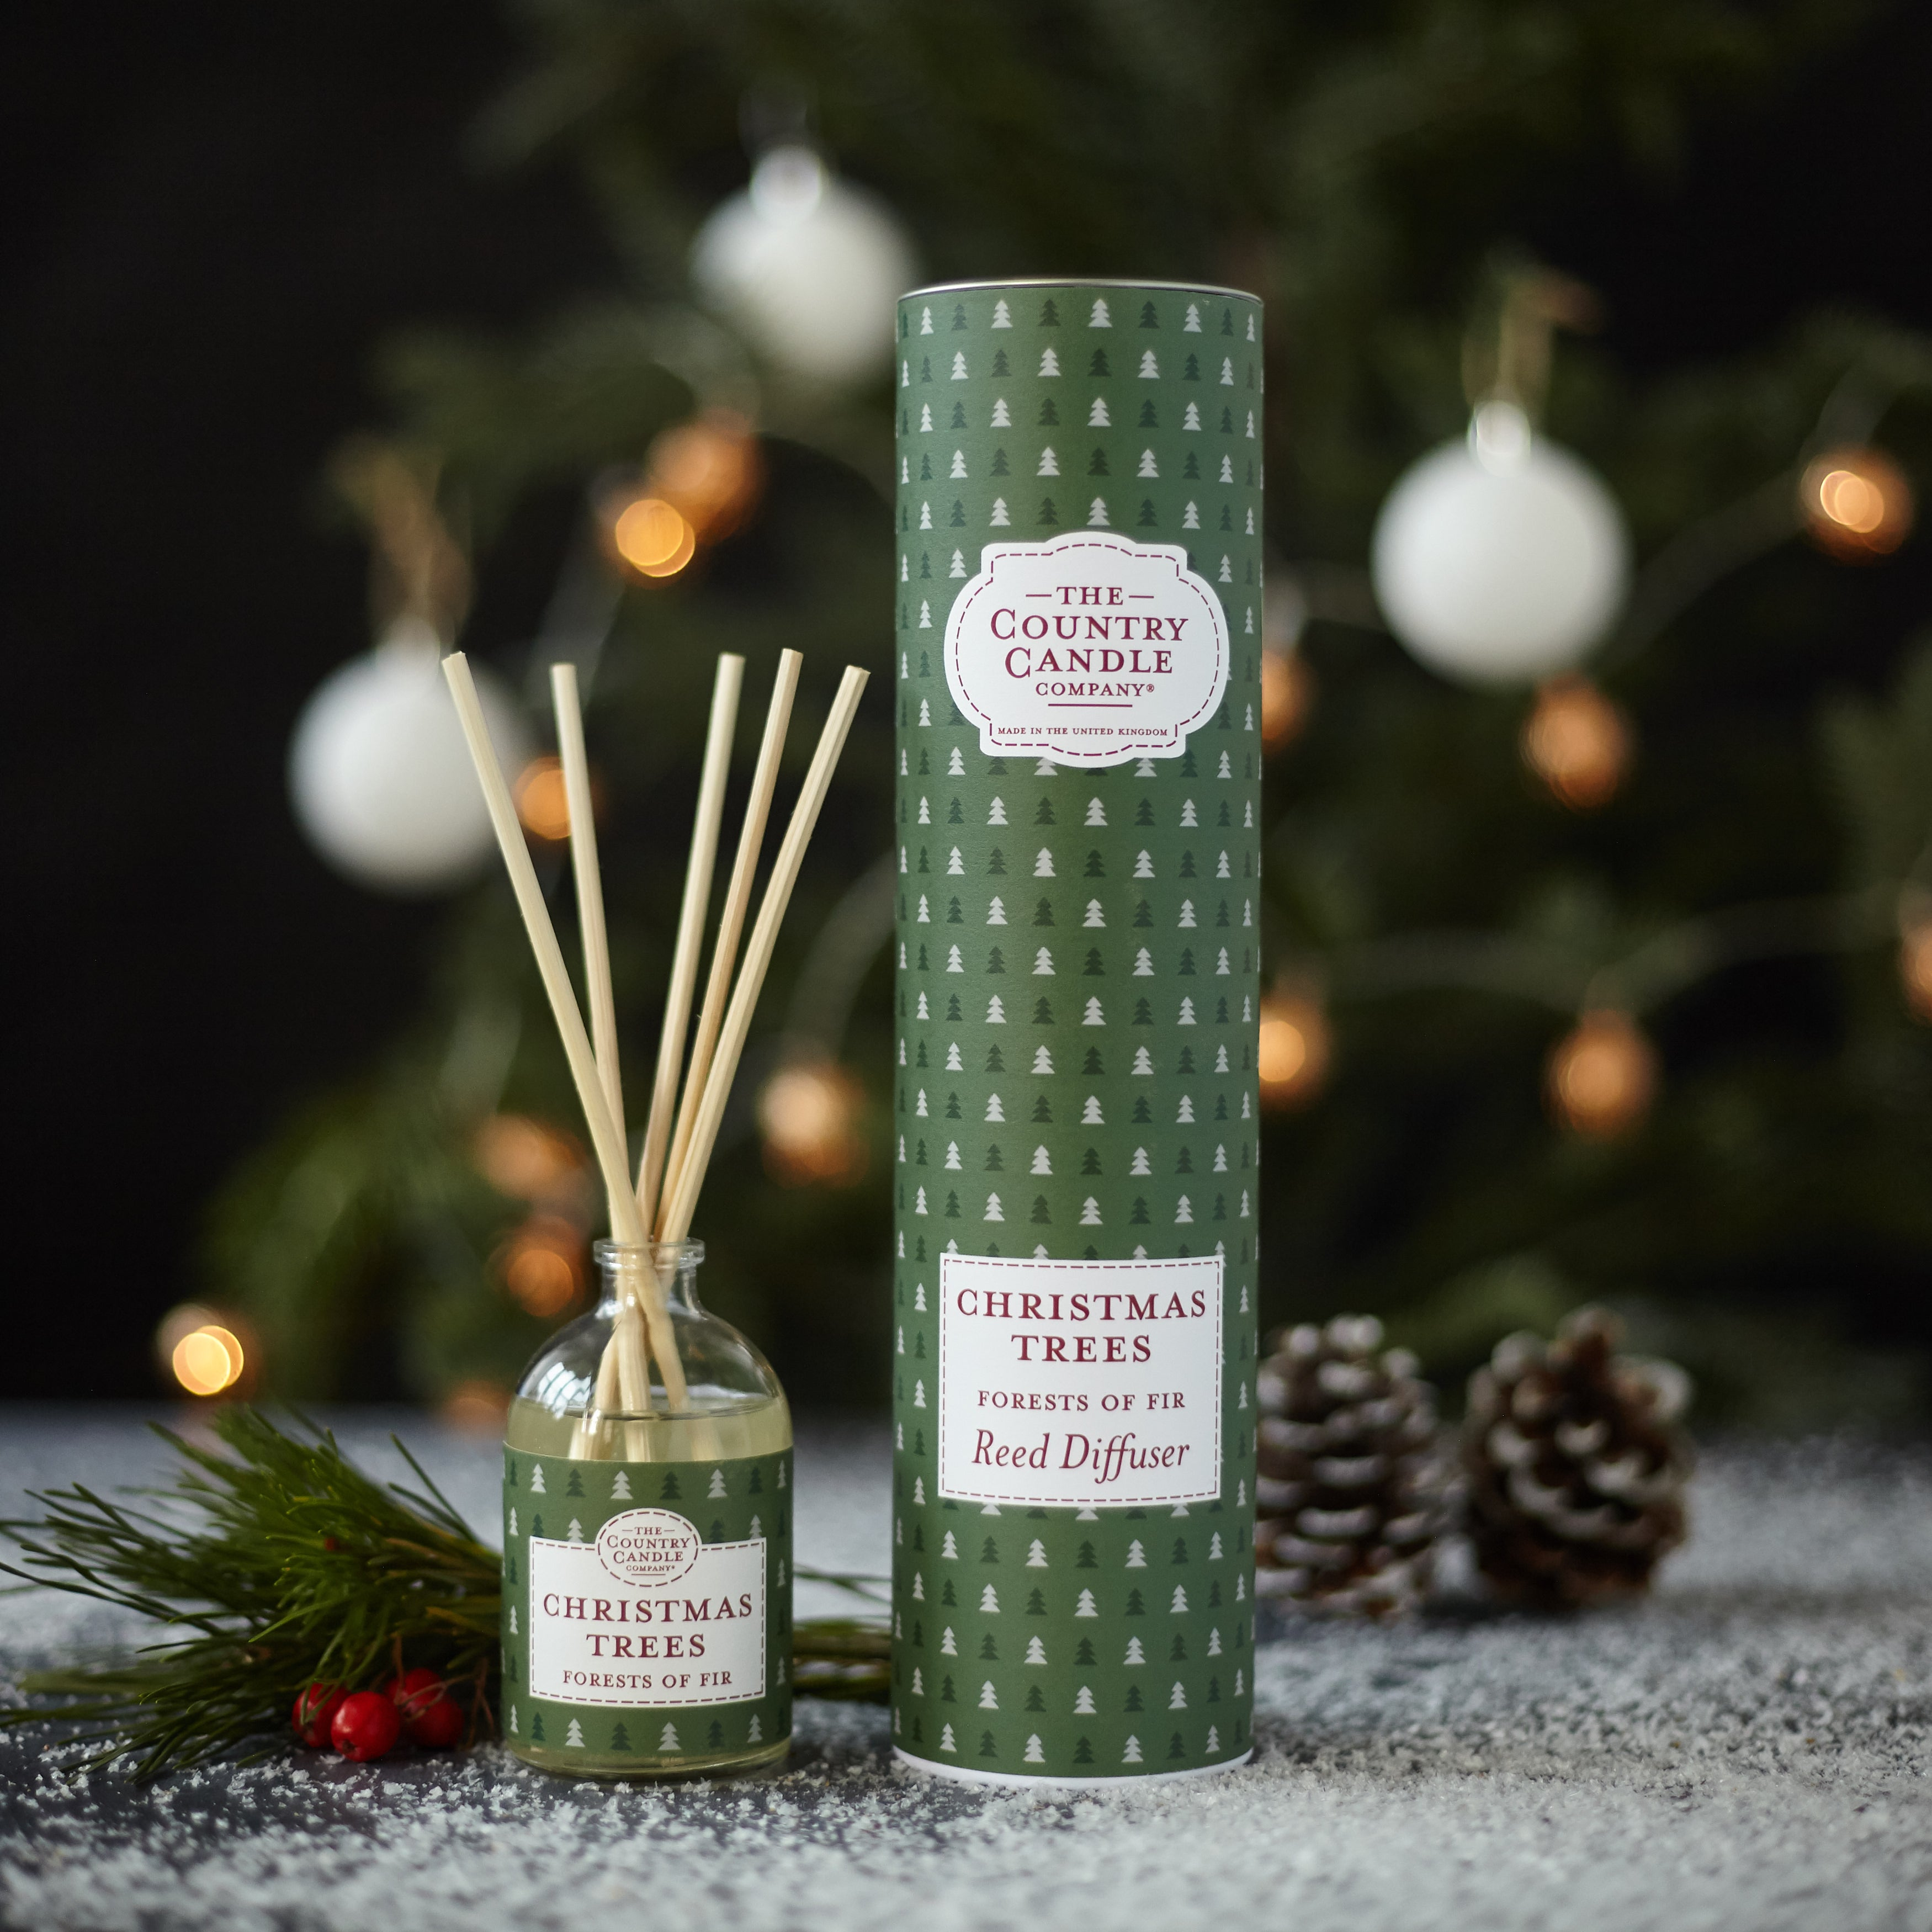 Christmas Trees - Ilmstrá / ilmglas - The Country Candle Company